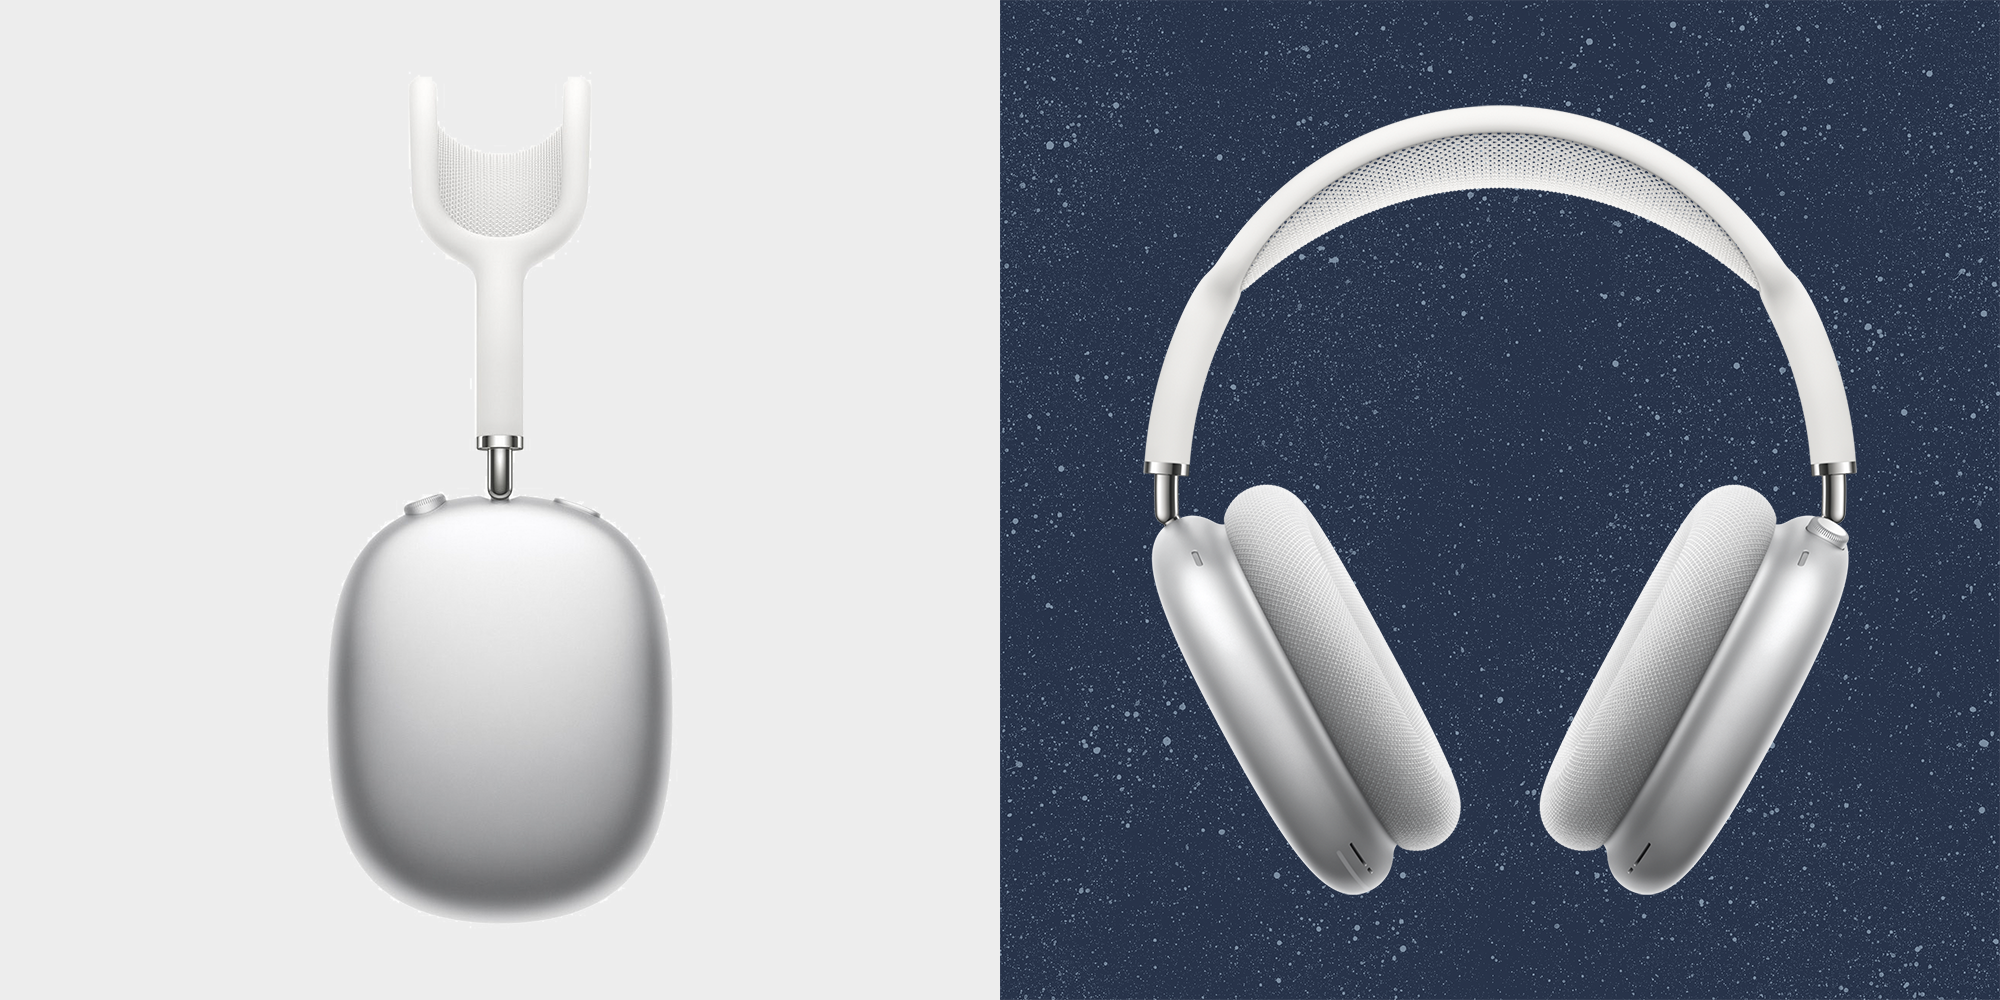 Are Apple's New AirPods Max Worth the Wait, or Should You Go for an Affordable Alternative?